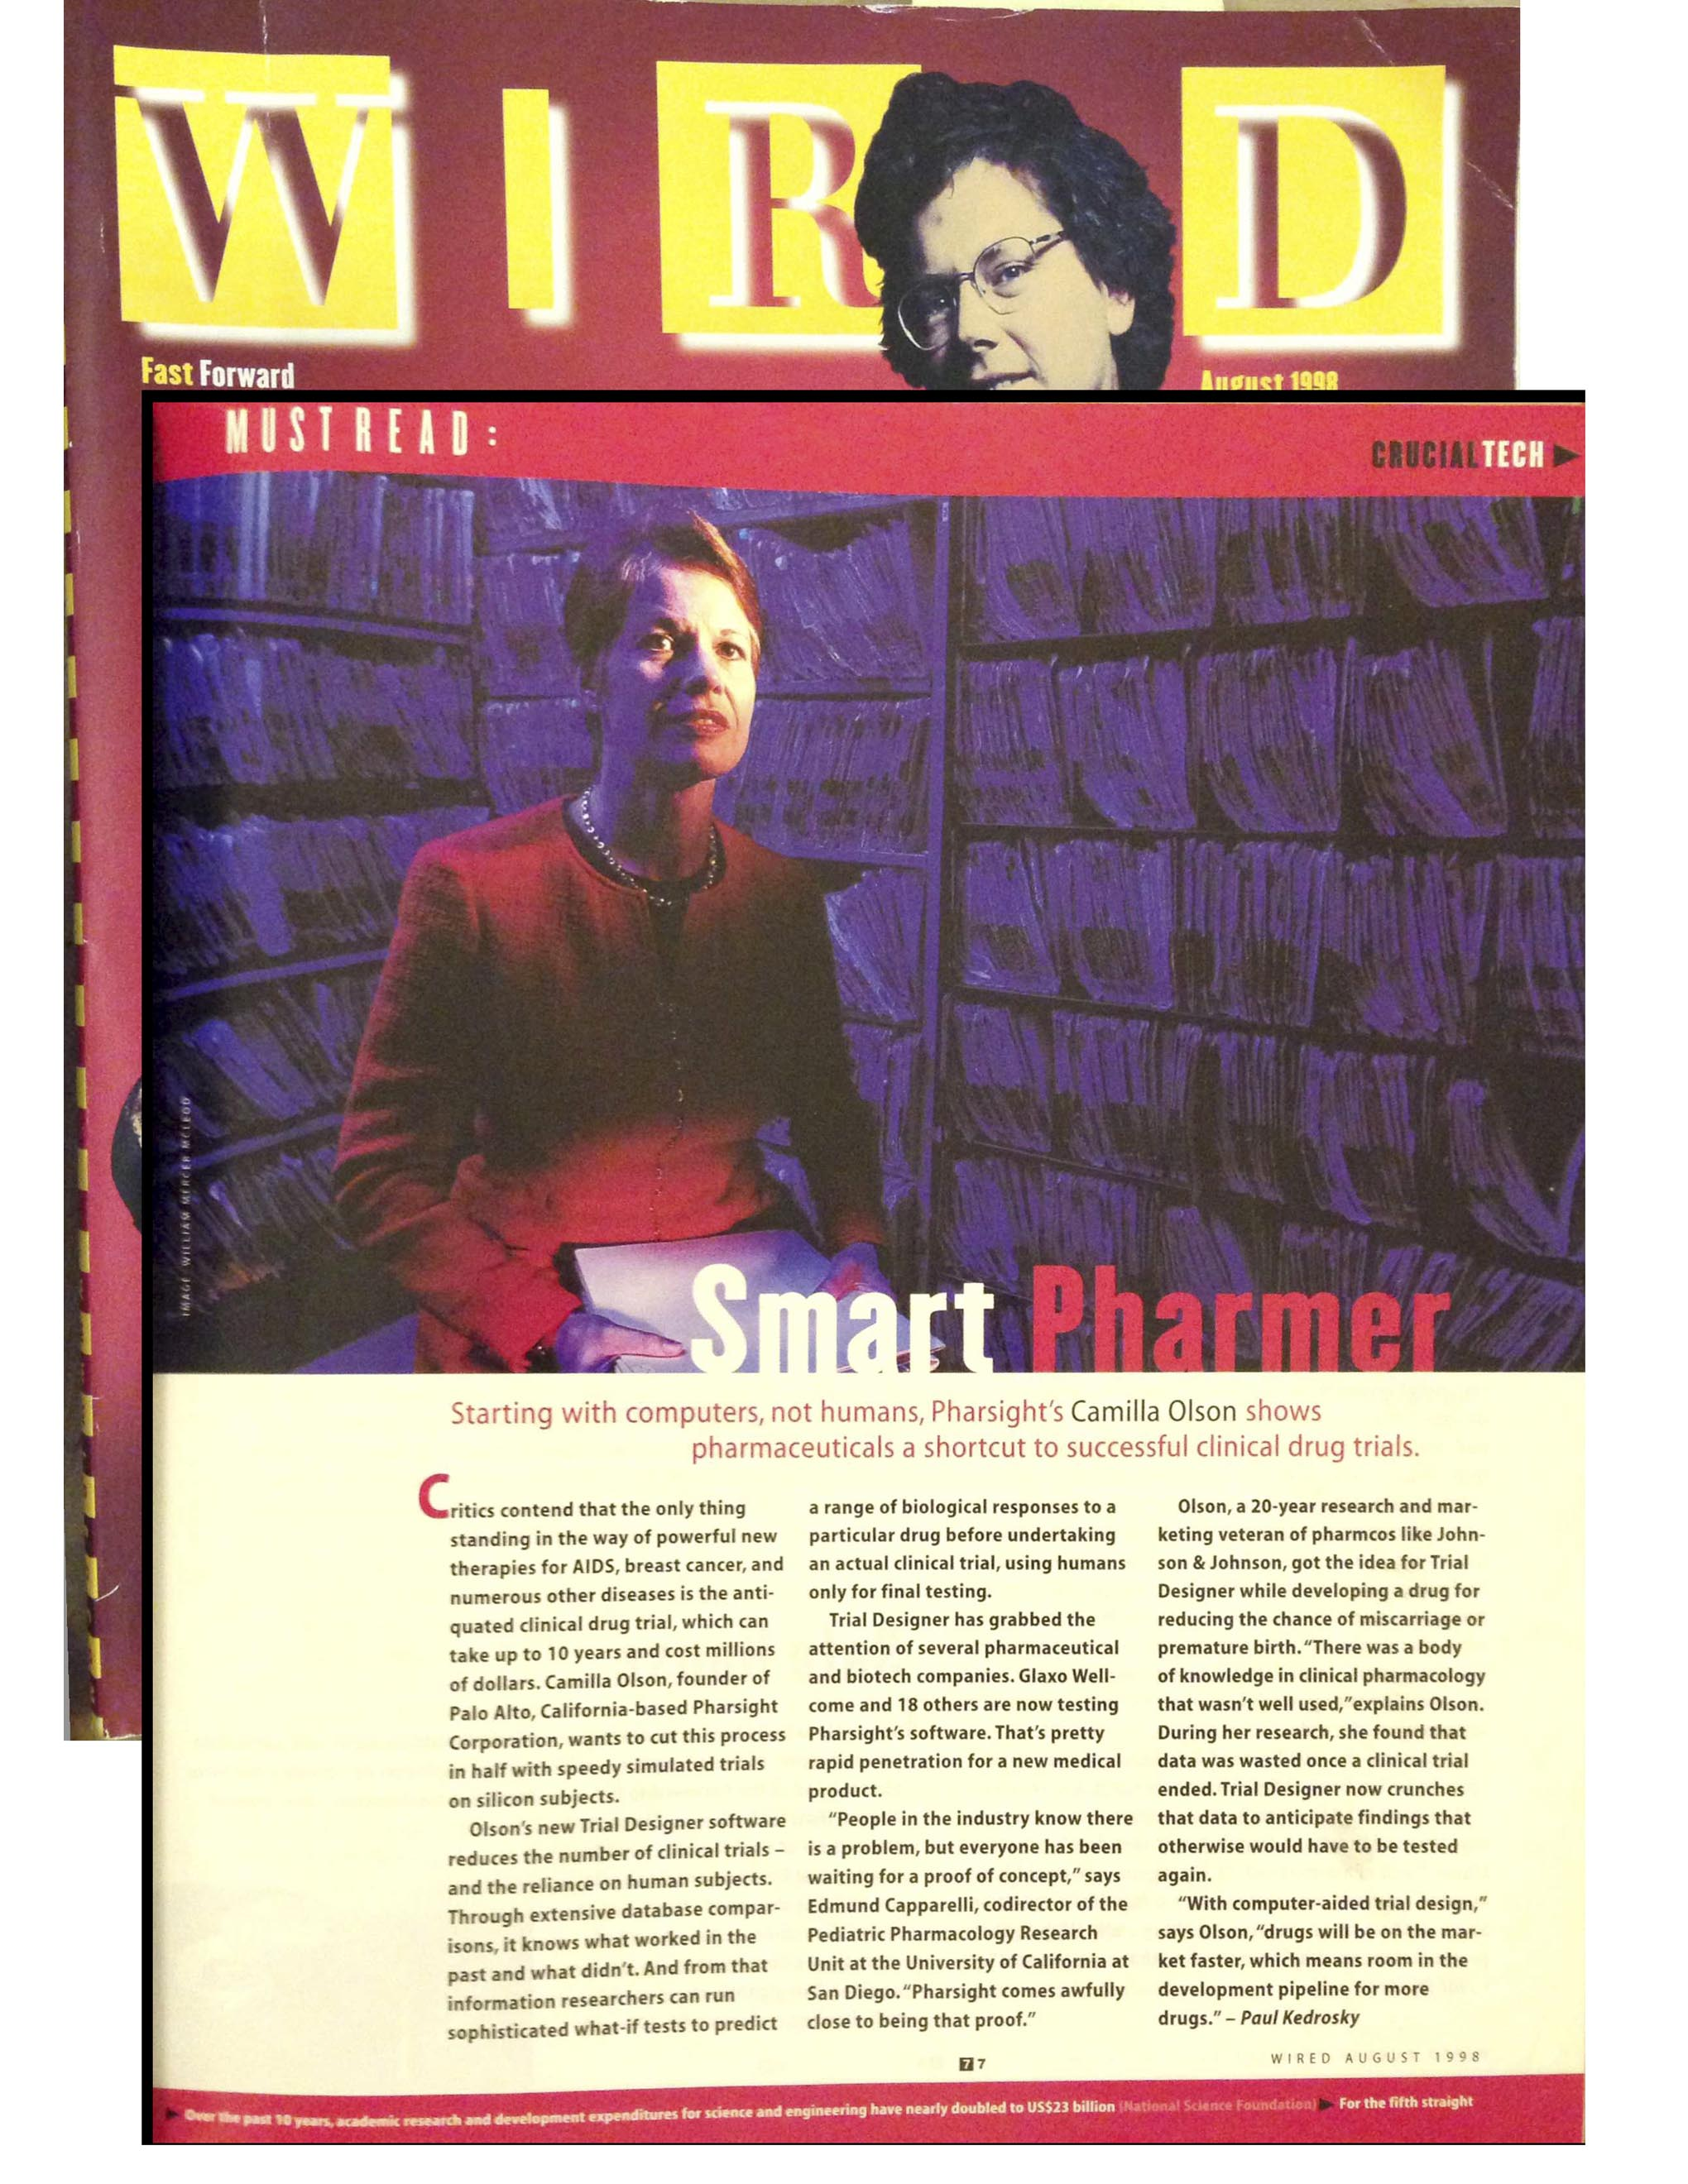 Wired August1998